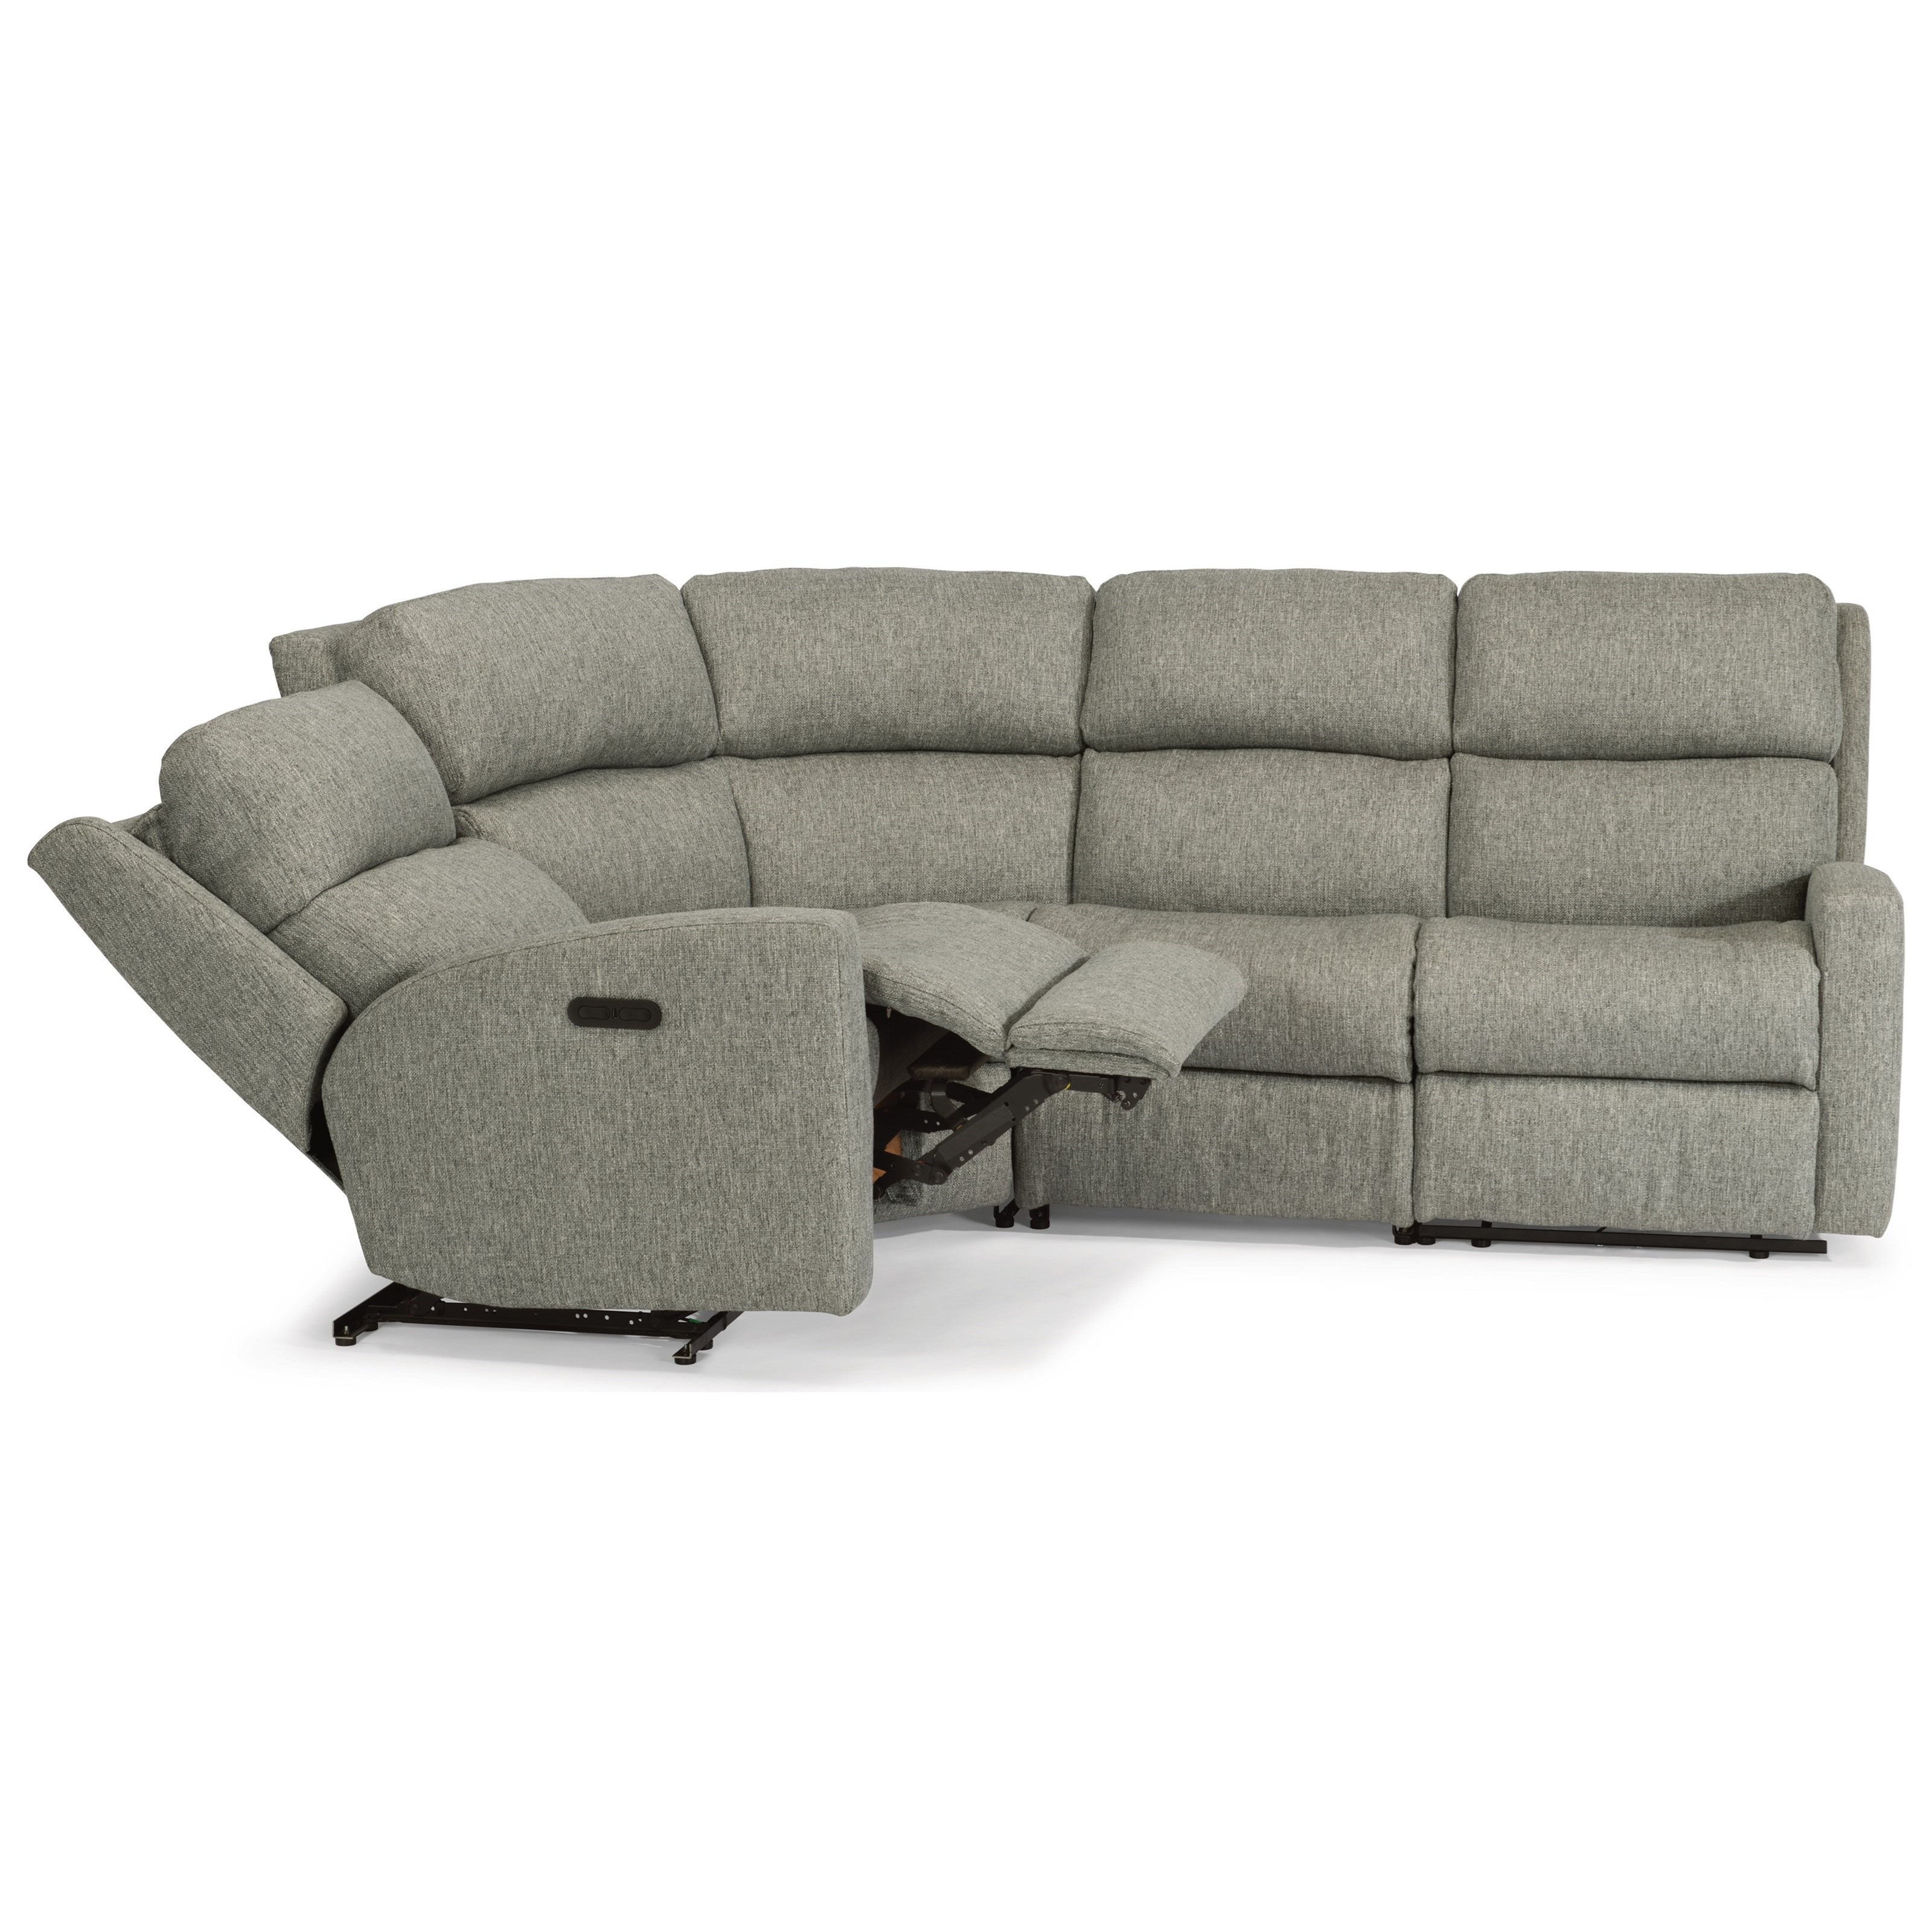 Flexsteel Catalina4 Pc Reclining Sectional W/ Pwr Headrests ...